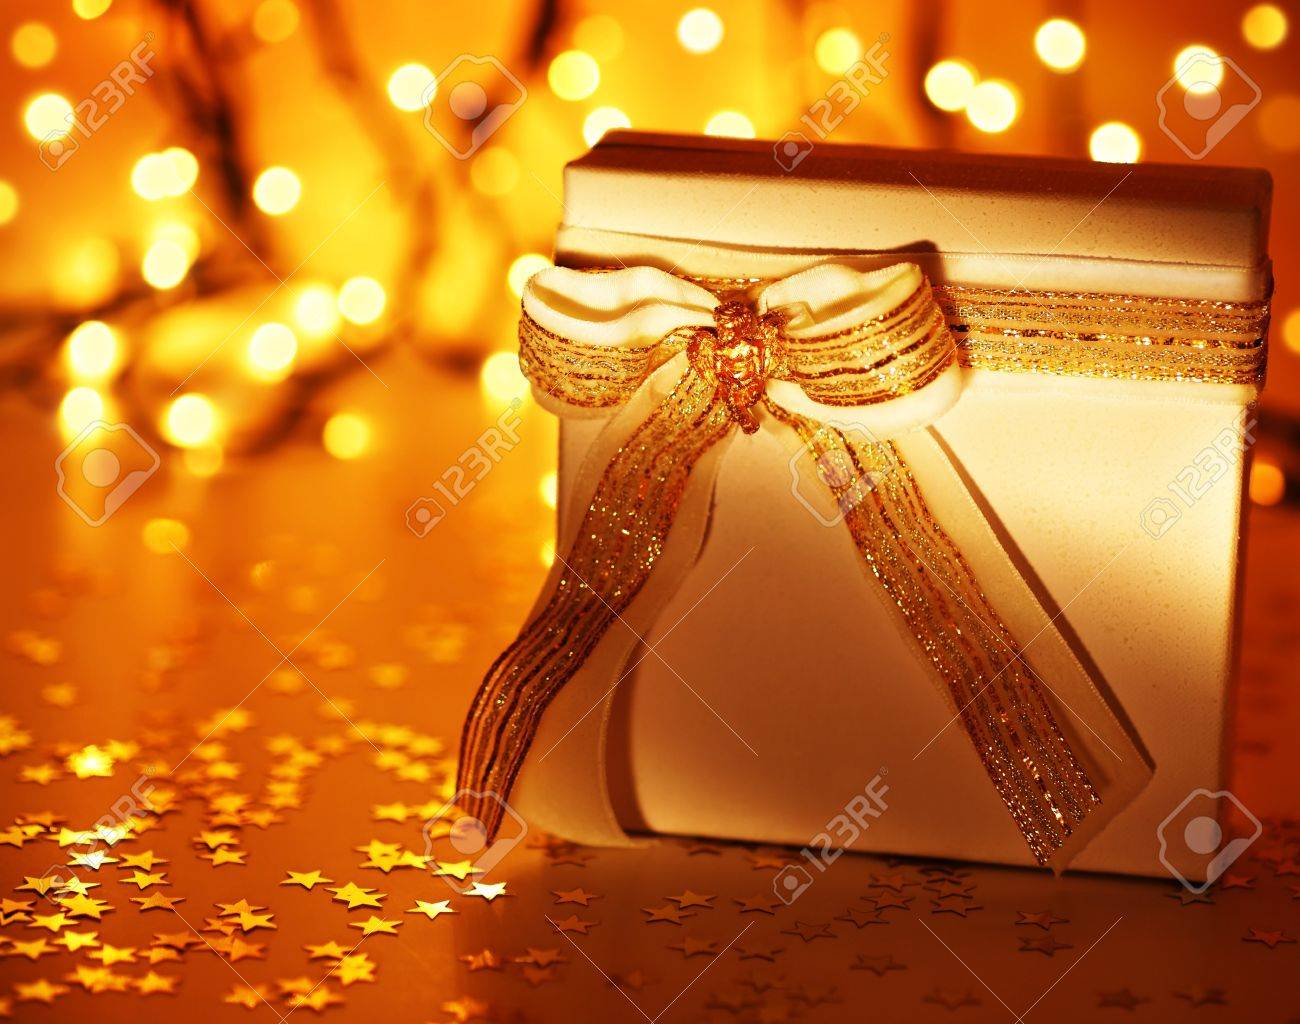 Gold holiday background with white present gift box, Christmas ornament and new year decoration over defocused lights Stock Photo - 8184108